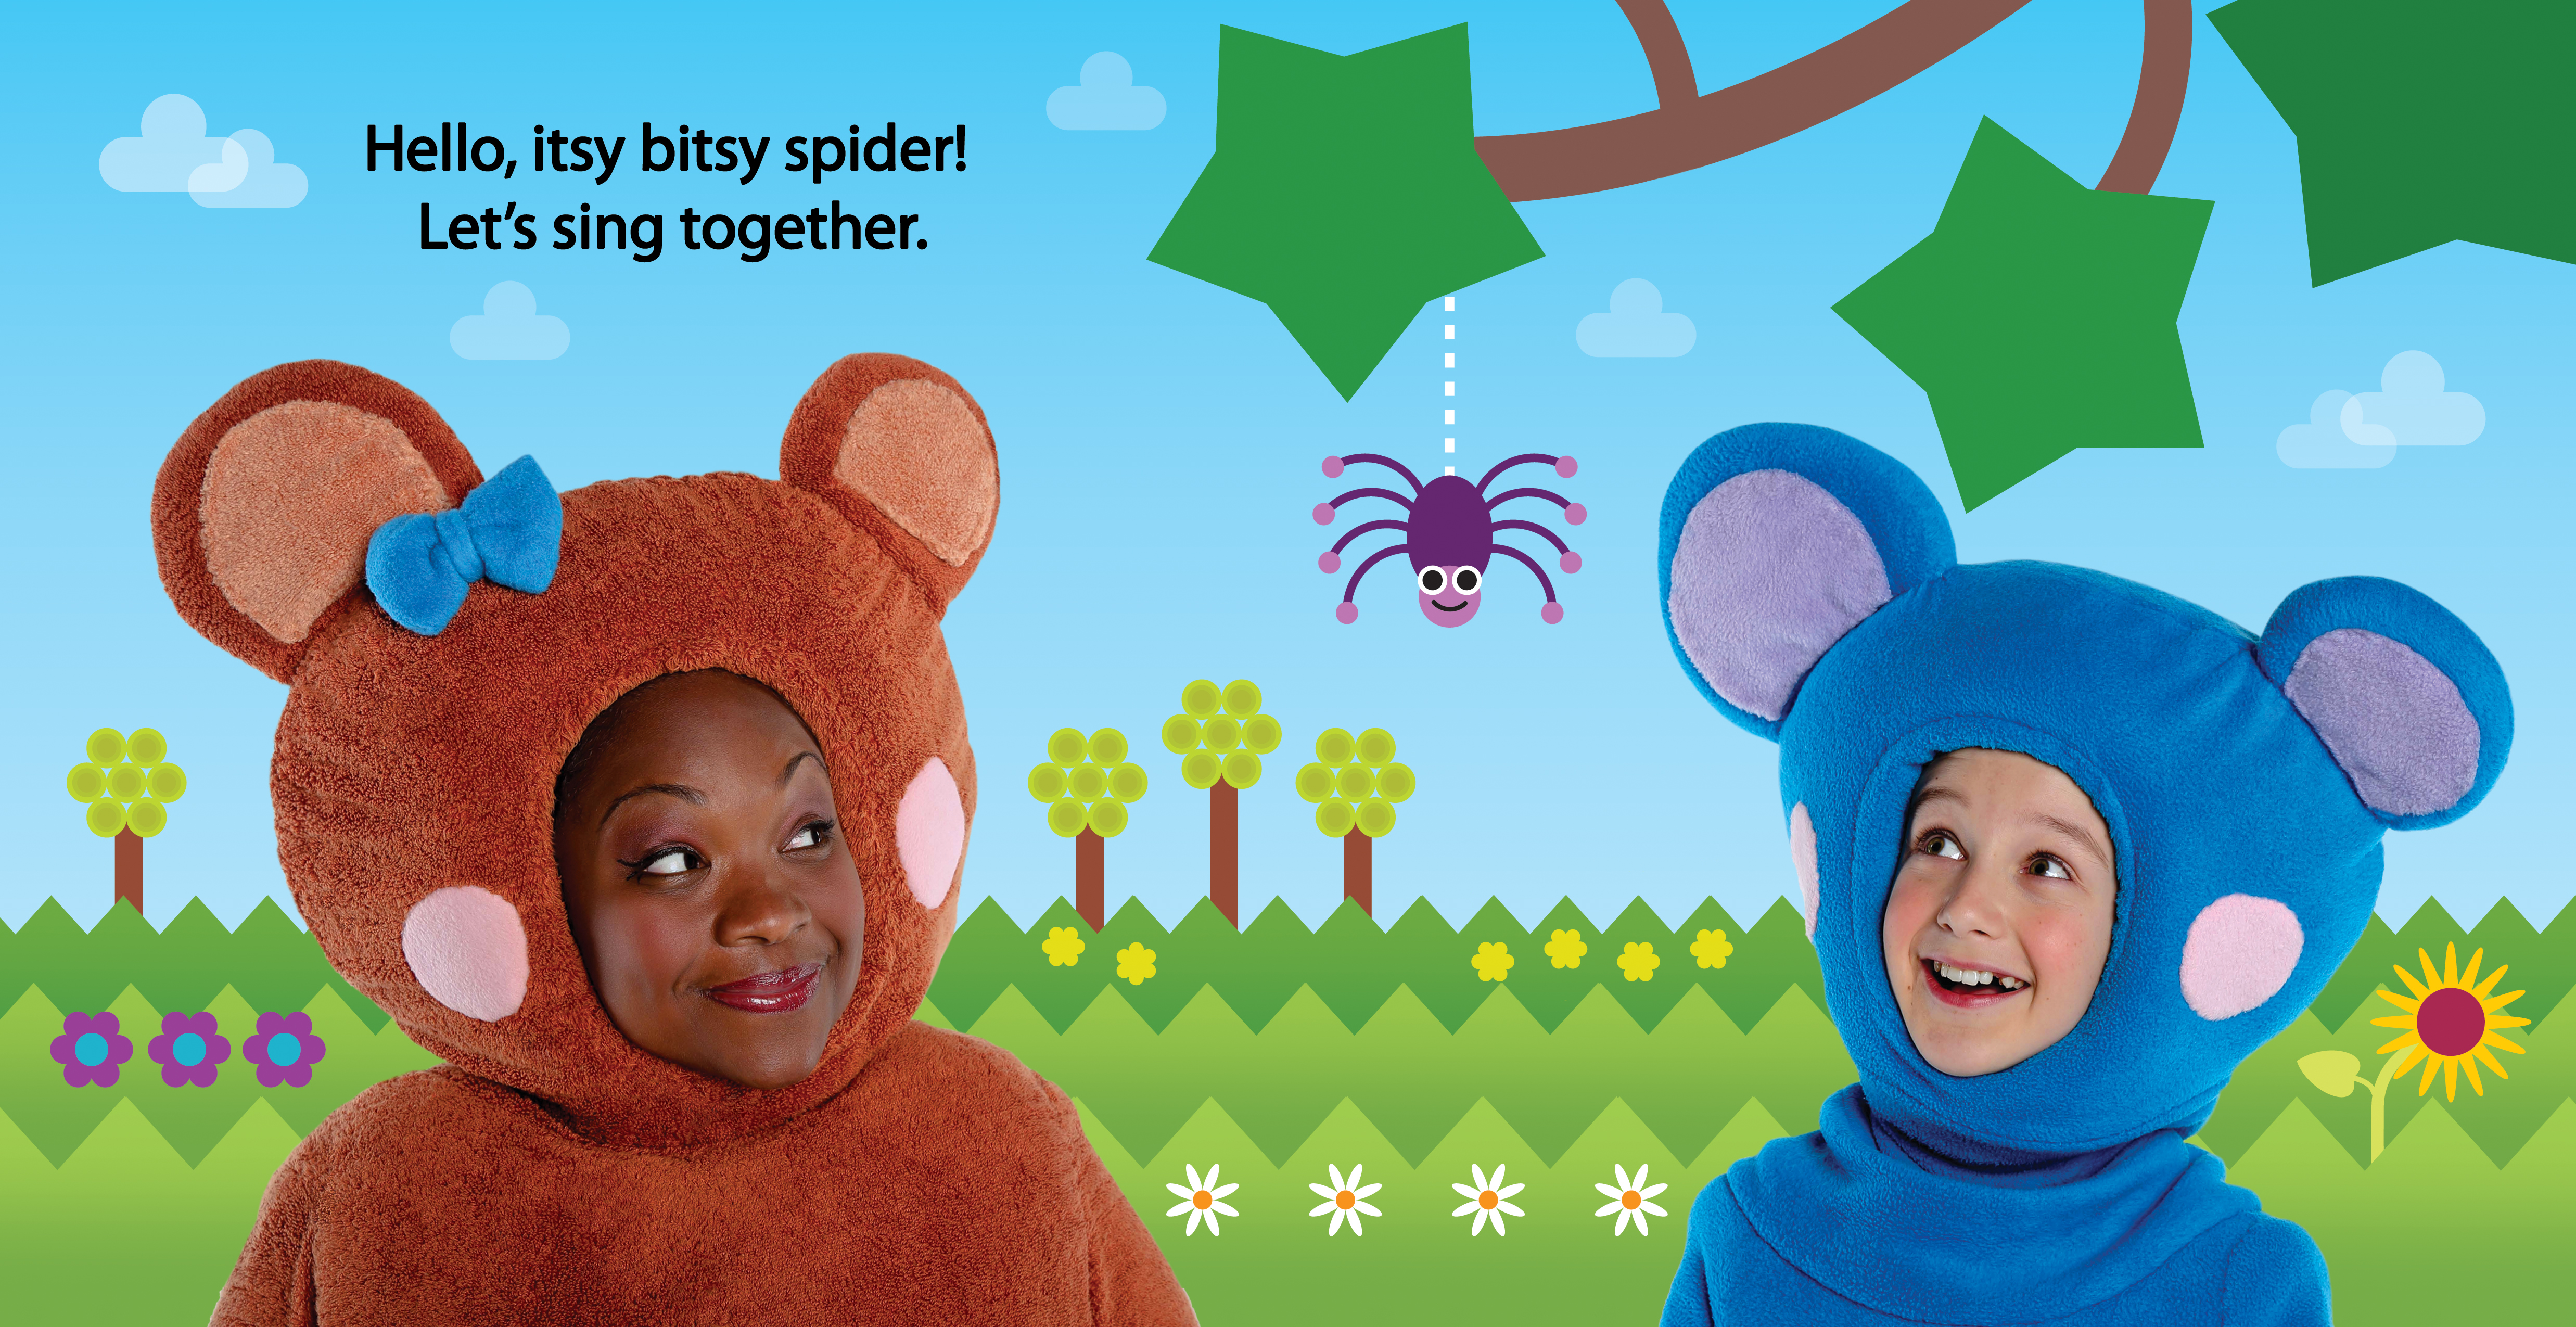 The Itsy Bitsy Spider book spread